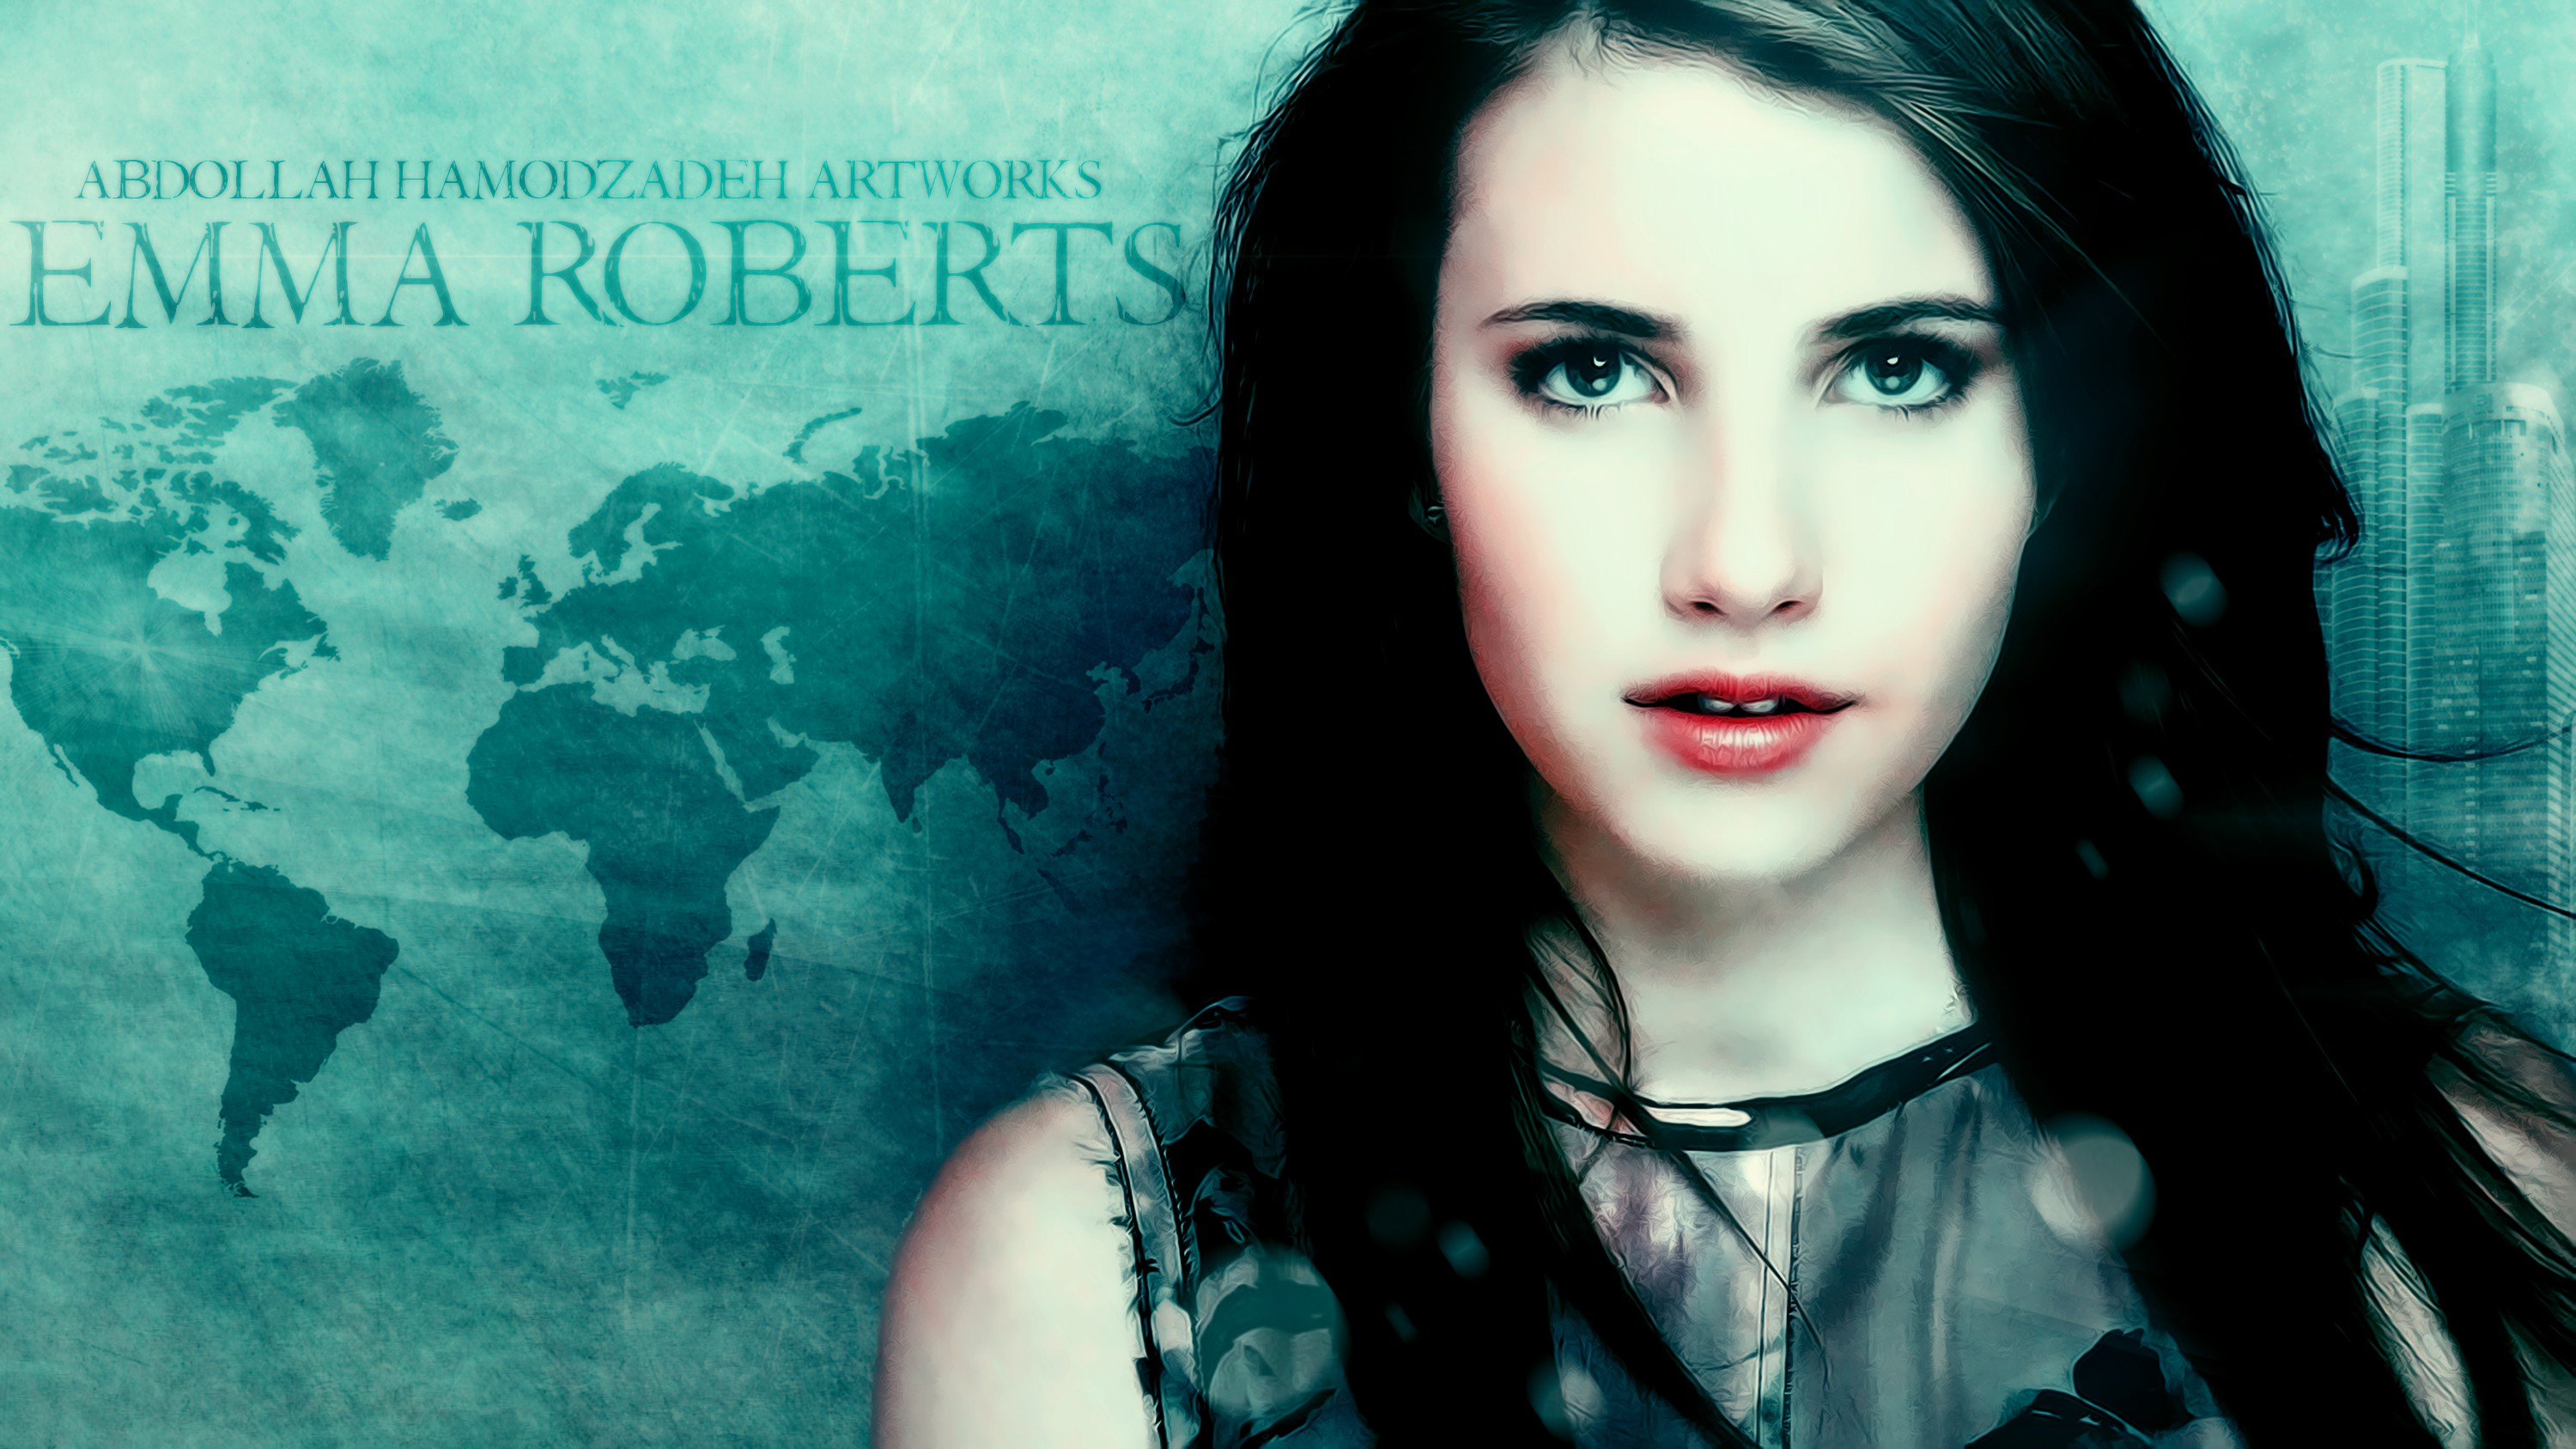 Emma Roberts by  A.H.K by AbdollahHamodzadeh